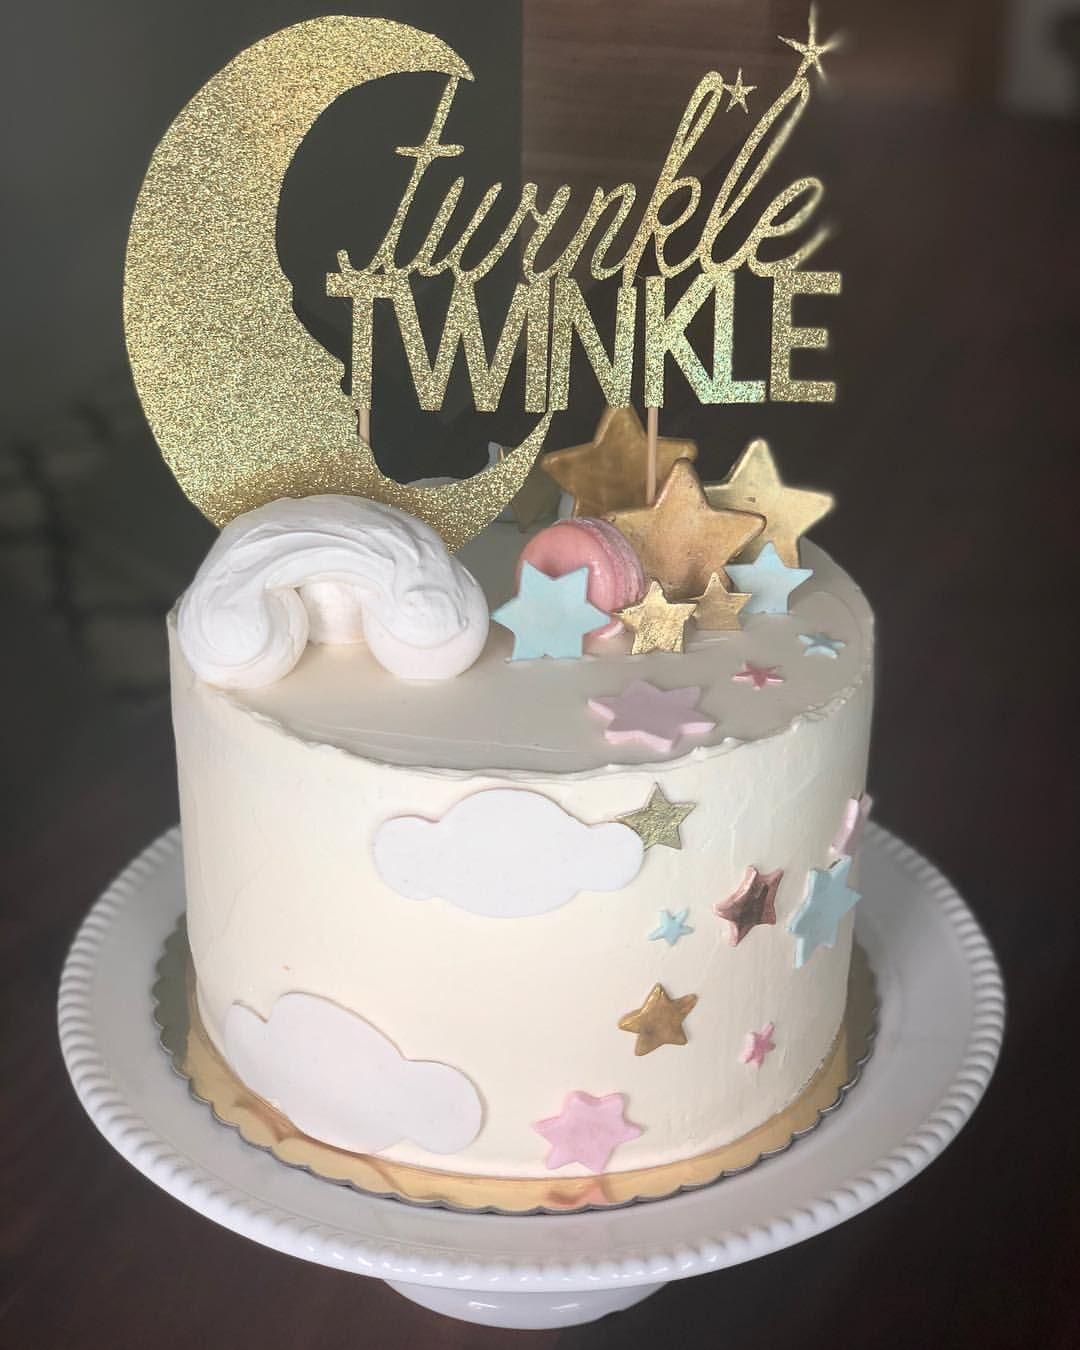 Twinkle Twinkle Little Star Gender Reveal Cake Made With